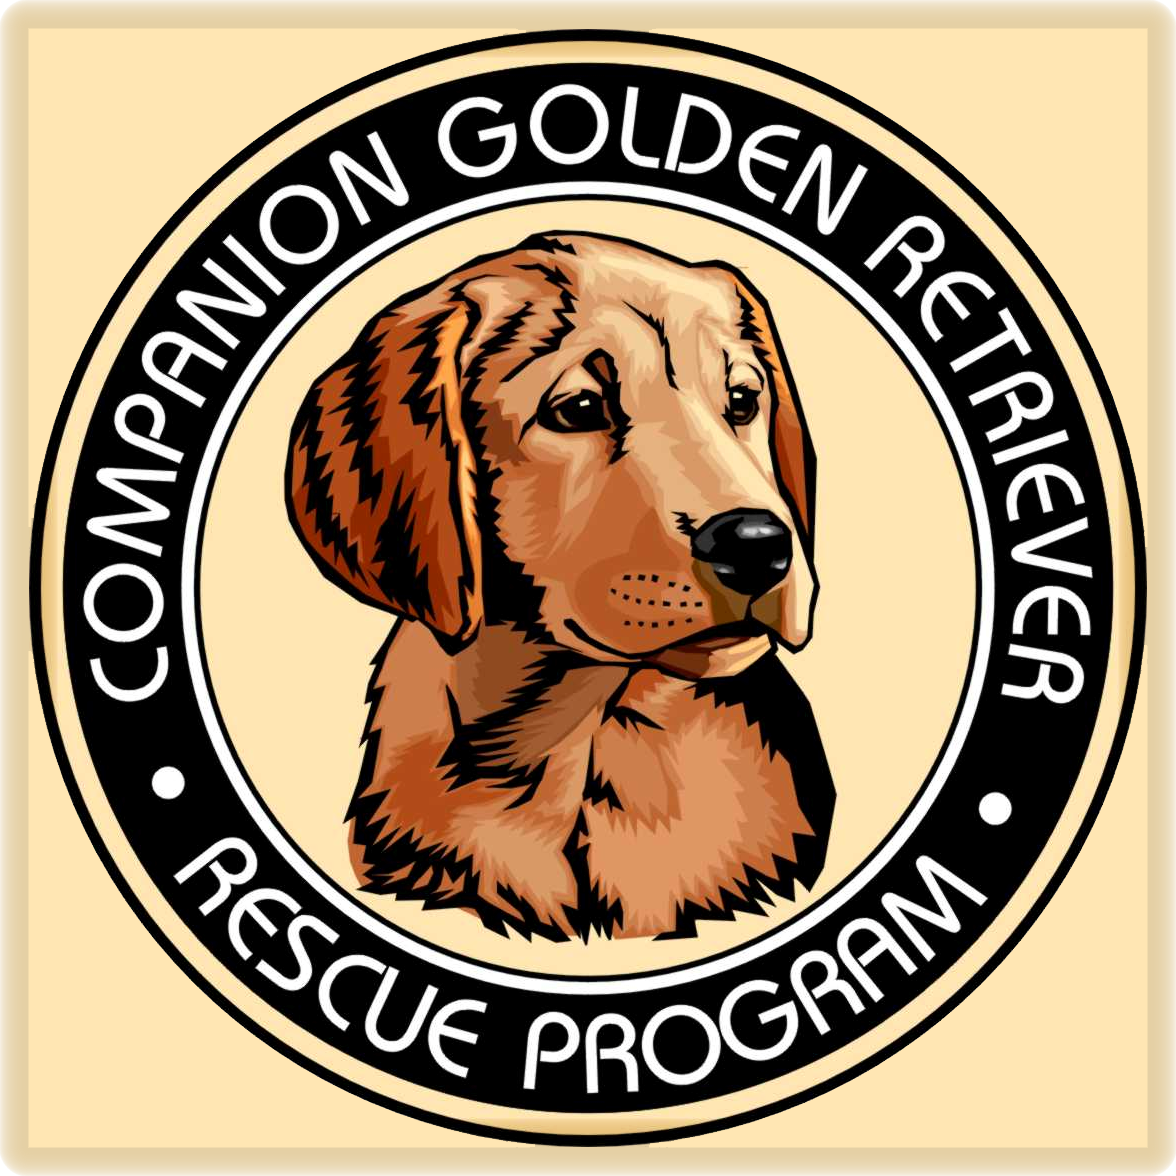 CGRR - Dedicated to the rescue and rehabilitation of homeless Golden Retrievers and placing them into permanent homes.Companion Golden Retriever Rescue is located in West Jordan, Utah. Serving the Intermountain West, accepting and placing dogs in Utah, Idaho, Montana, Wyoming, Colorado, Arizona and Nevada. Read more about us.